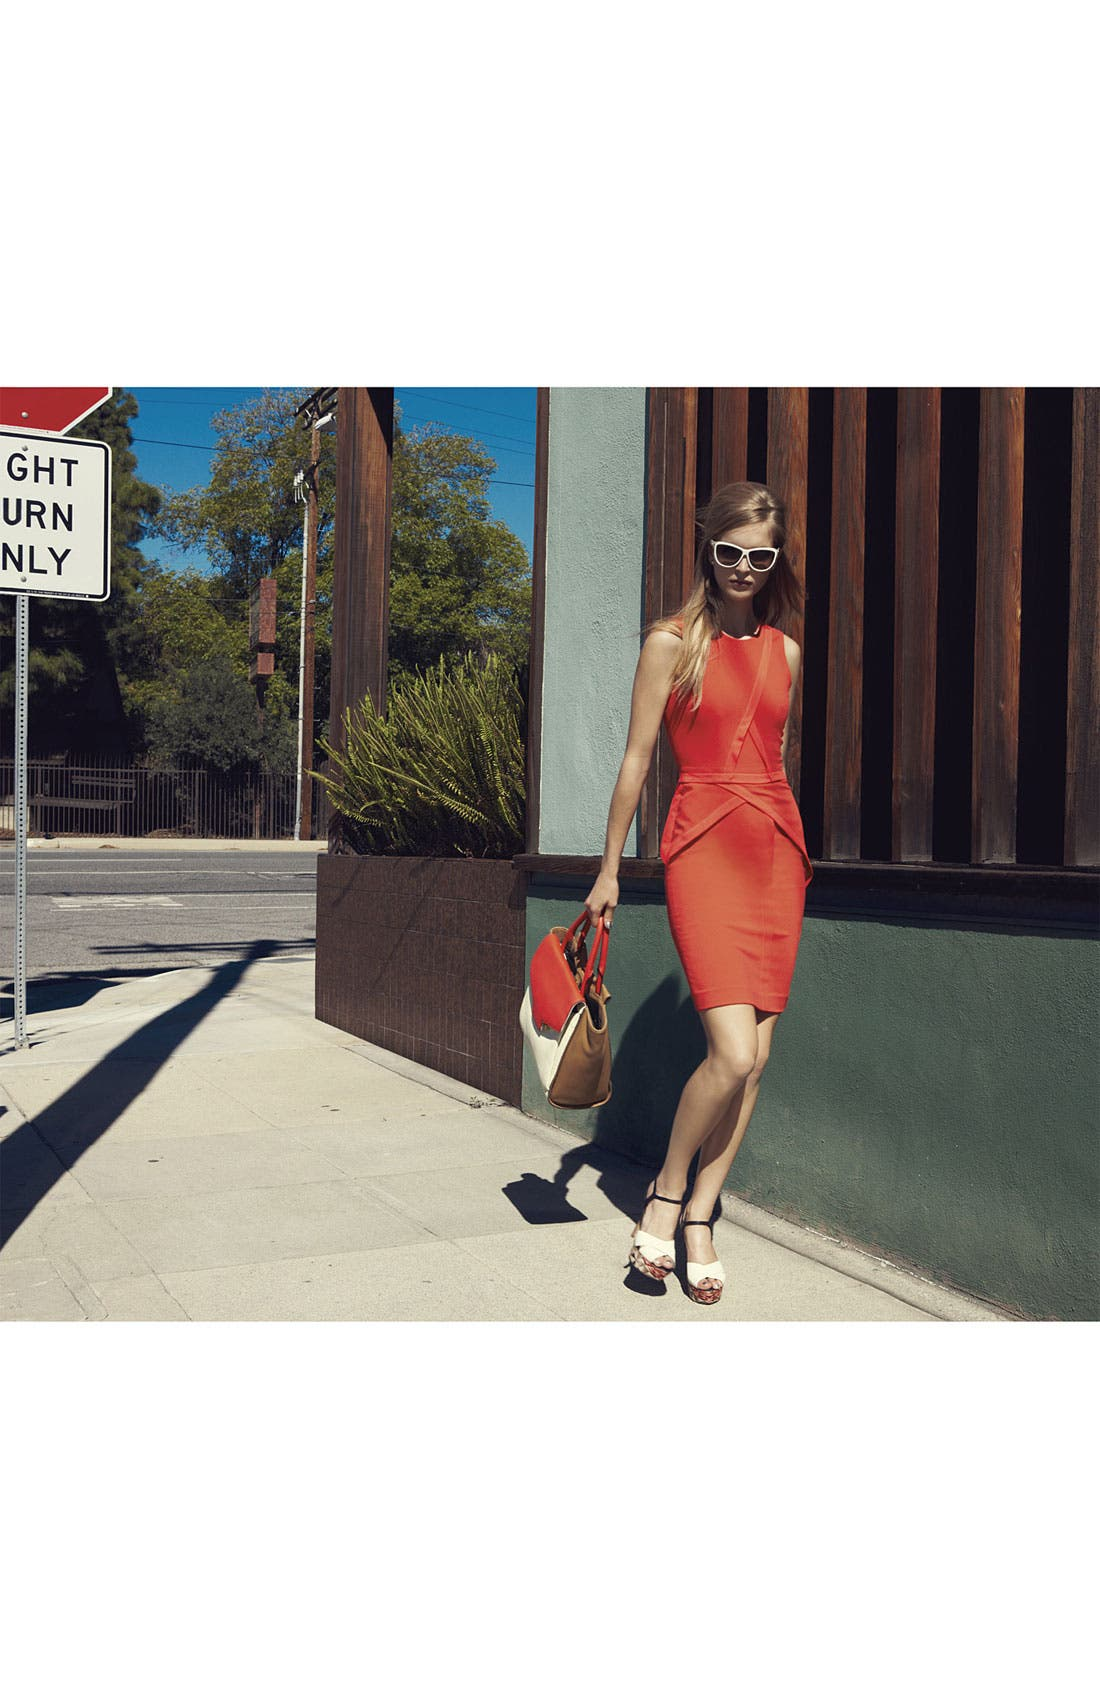 Alternate Image 1 Selected - BCBGMAXAZRIA Dress & Accessories